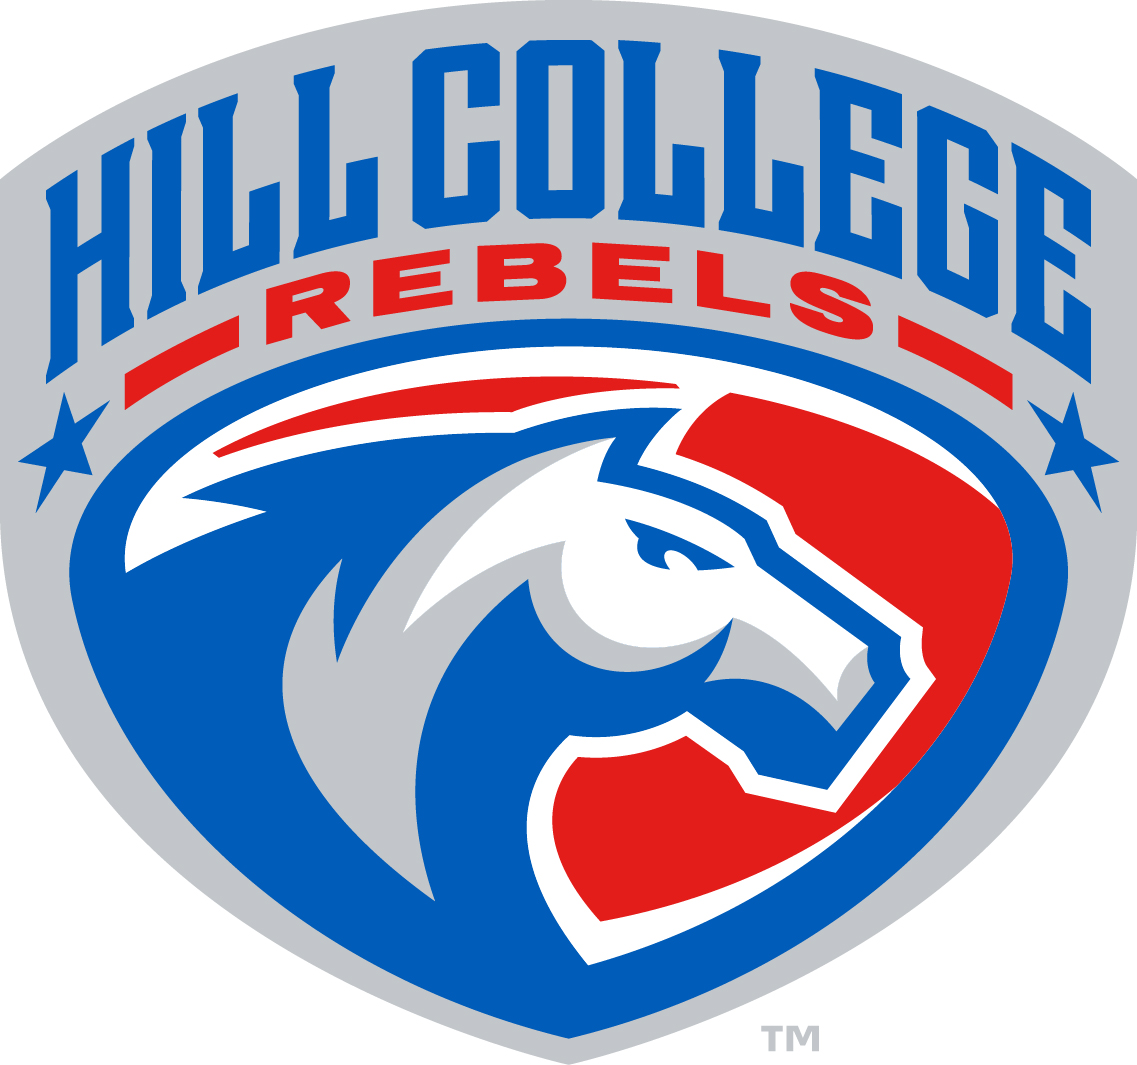 New Hill College Mascot Unveiled